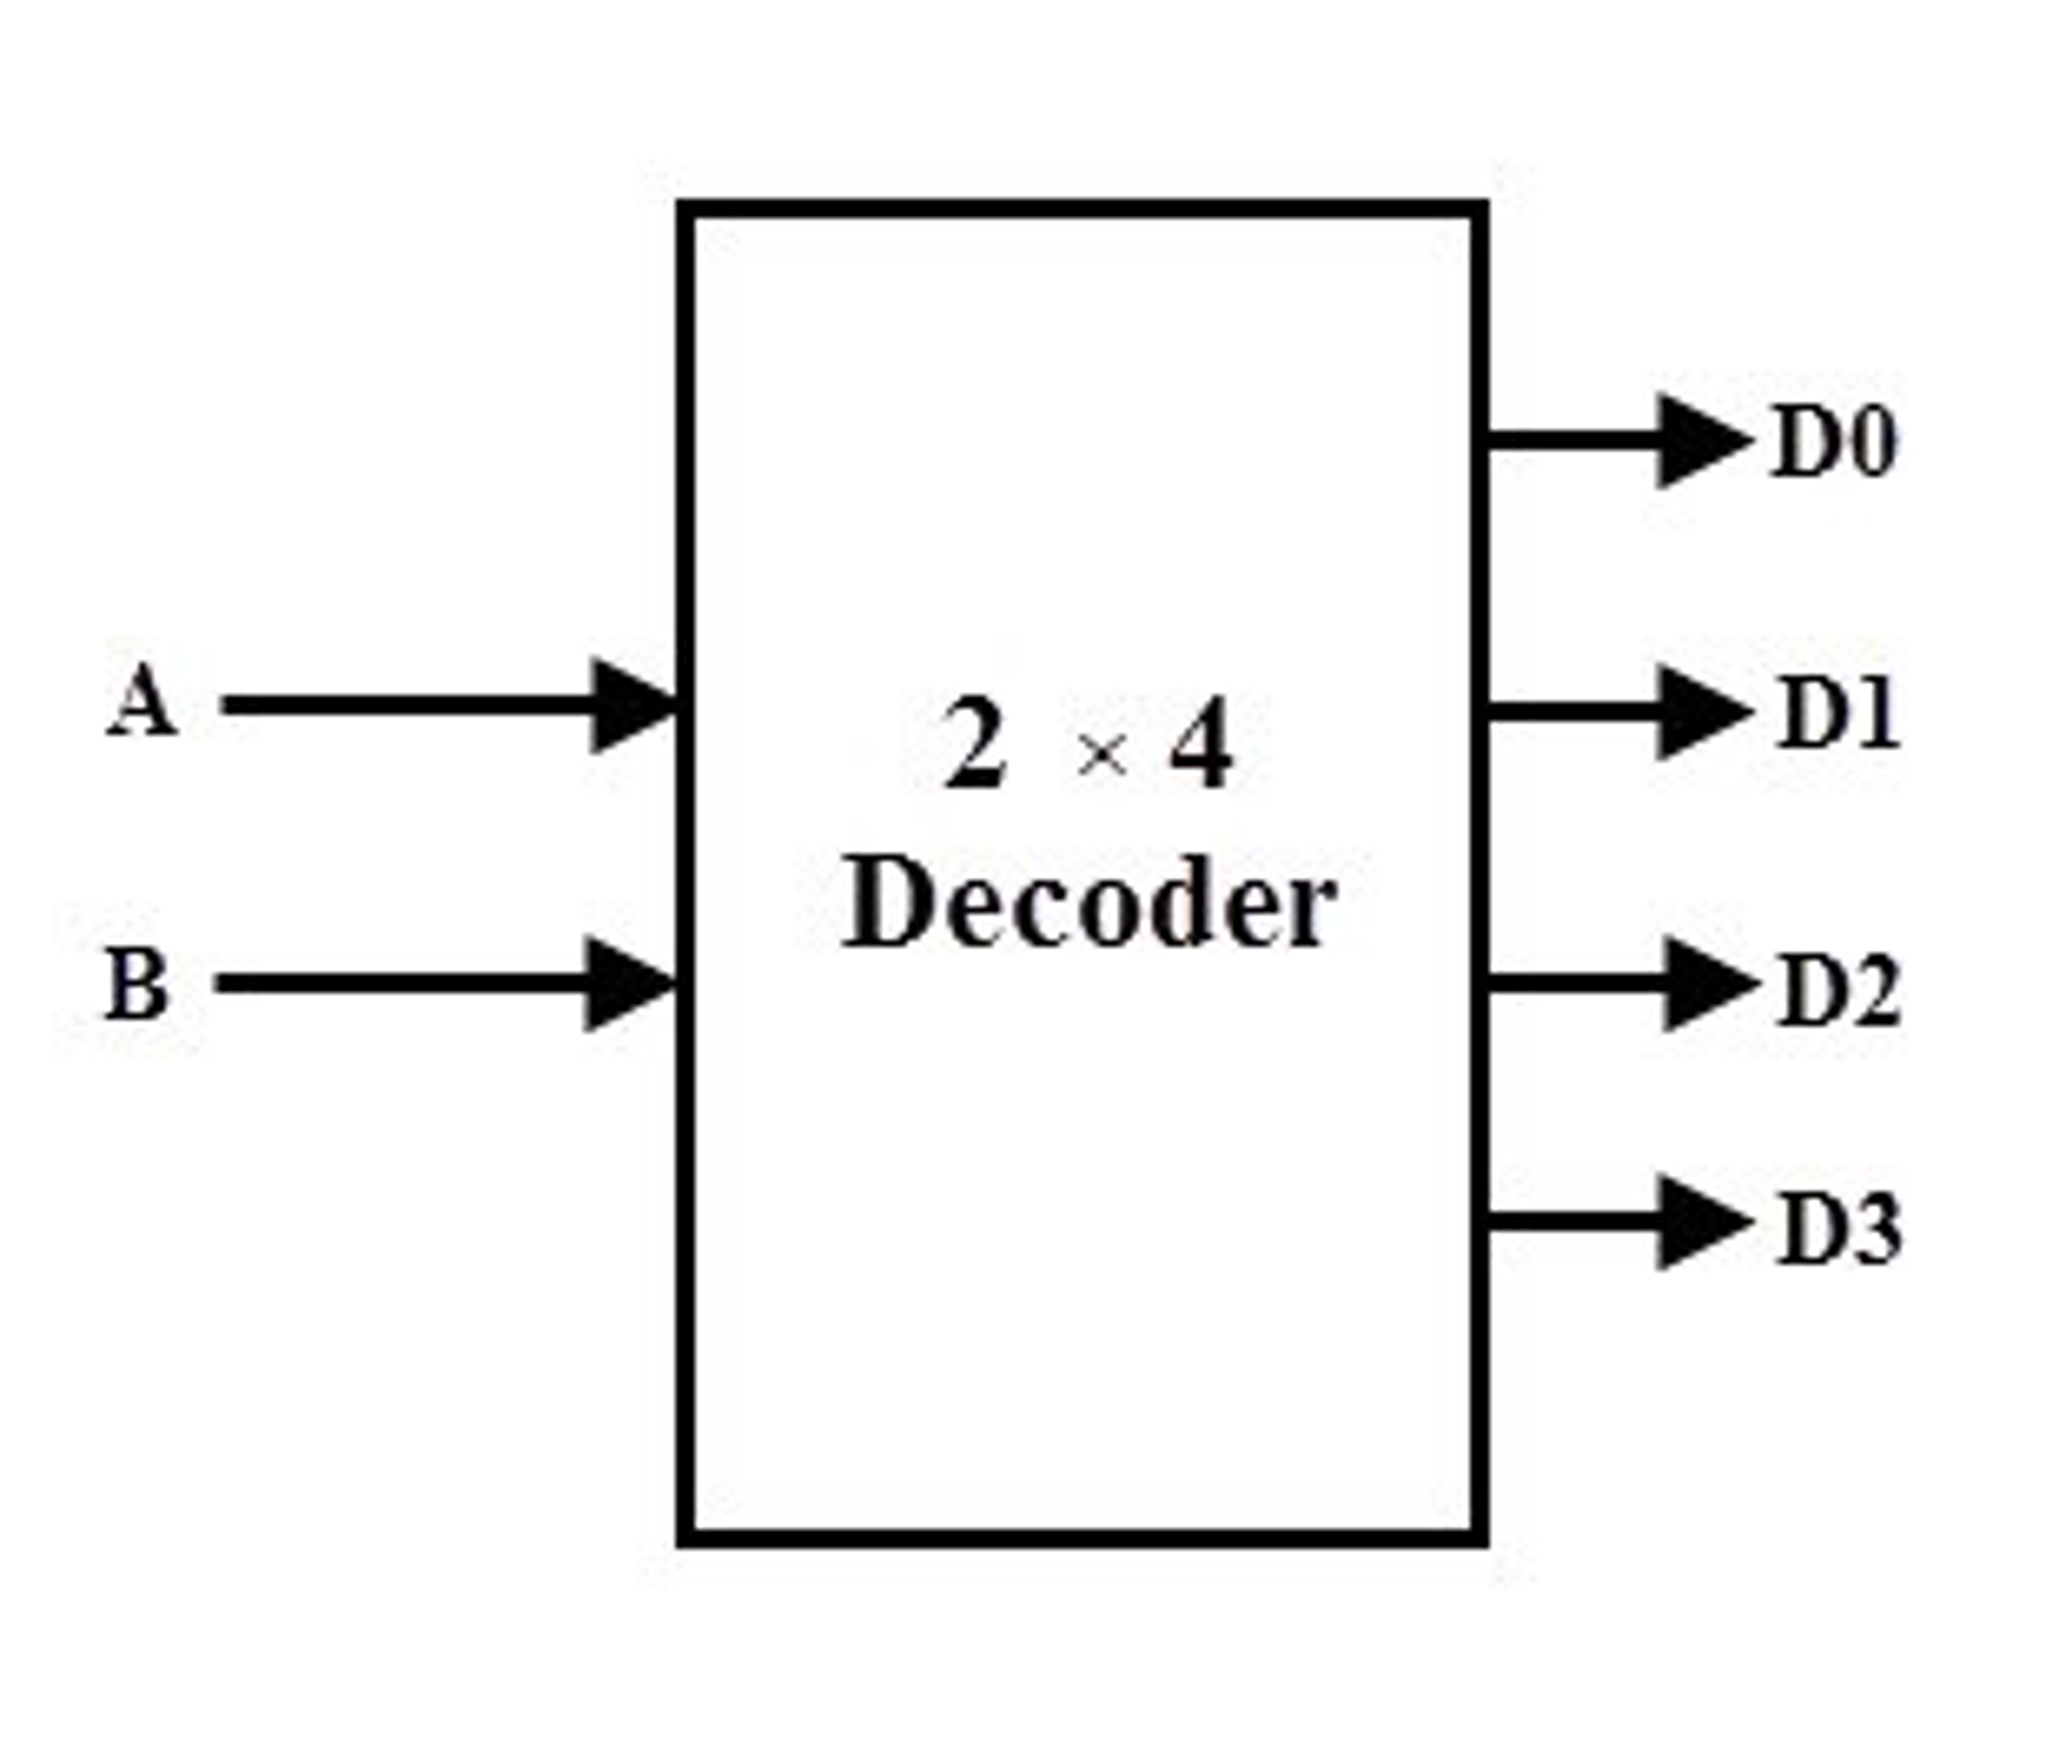 Technology Audio decoder converts digital audio to analog form Binary decoder digital circuits such as 1ofN and sevensegment decoders Decompress compression